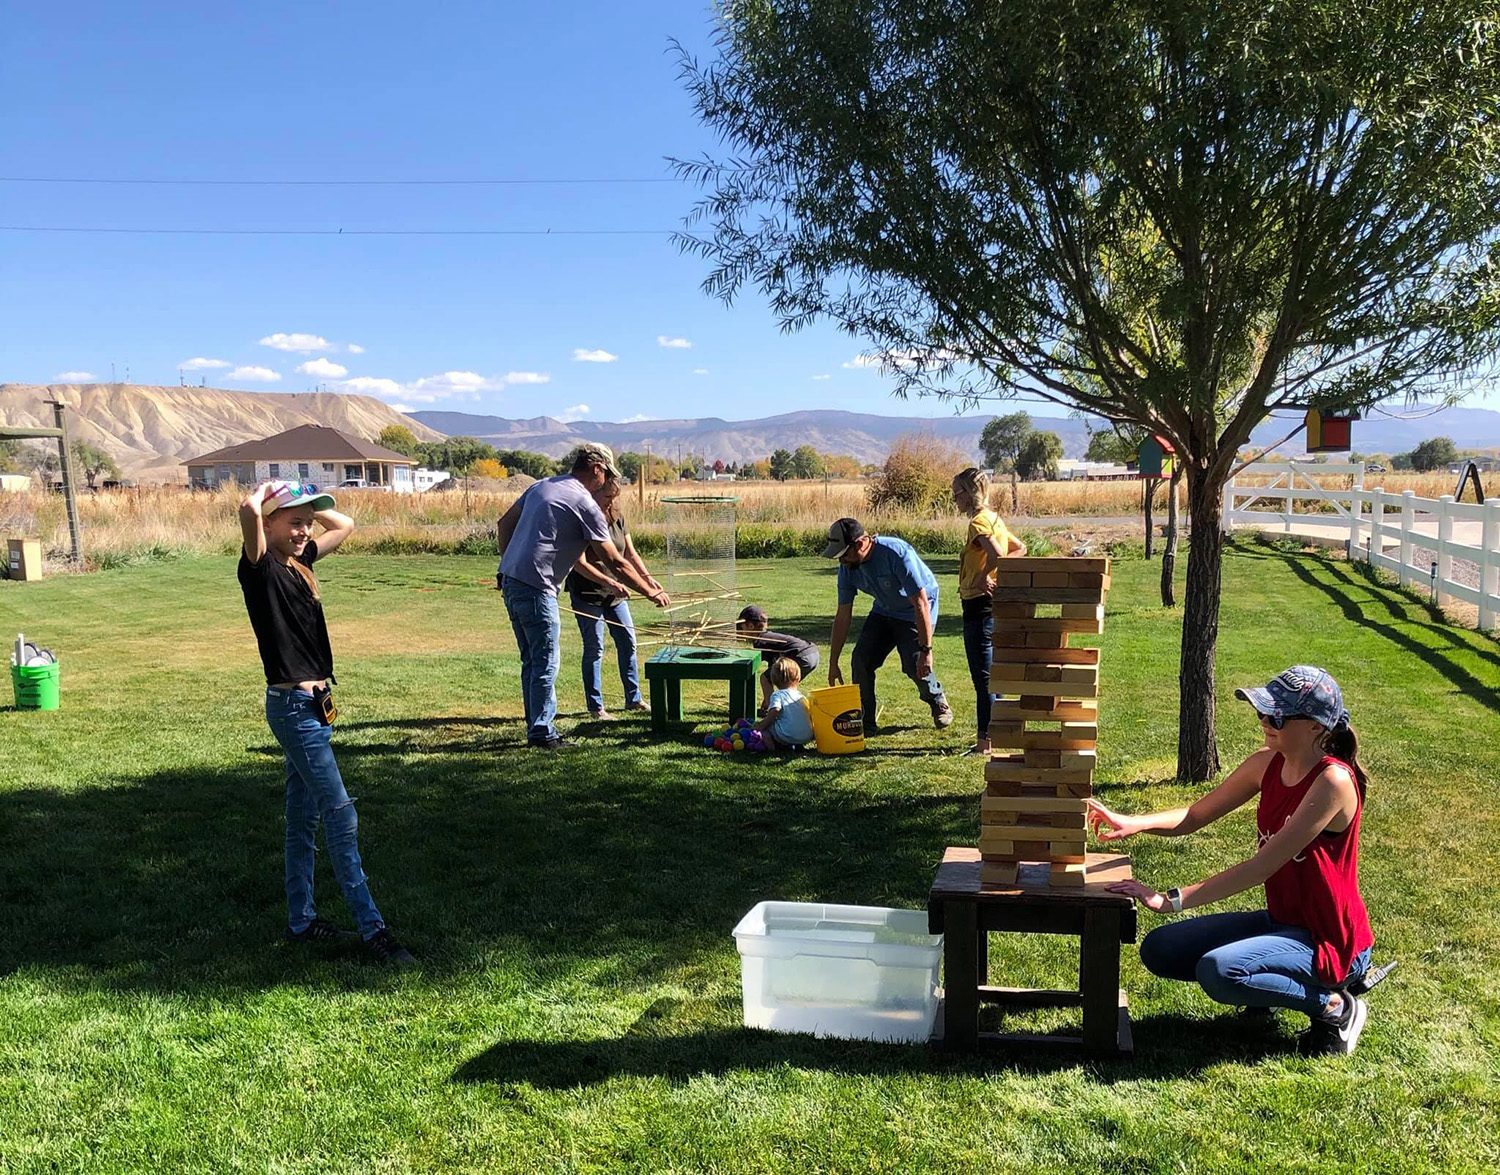 Family activities at Peter's Pumpkin Patch